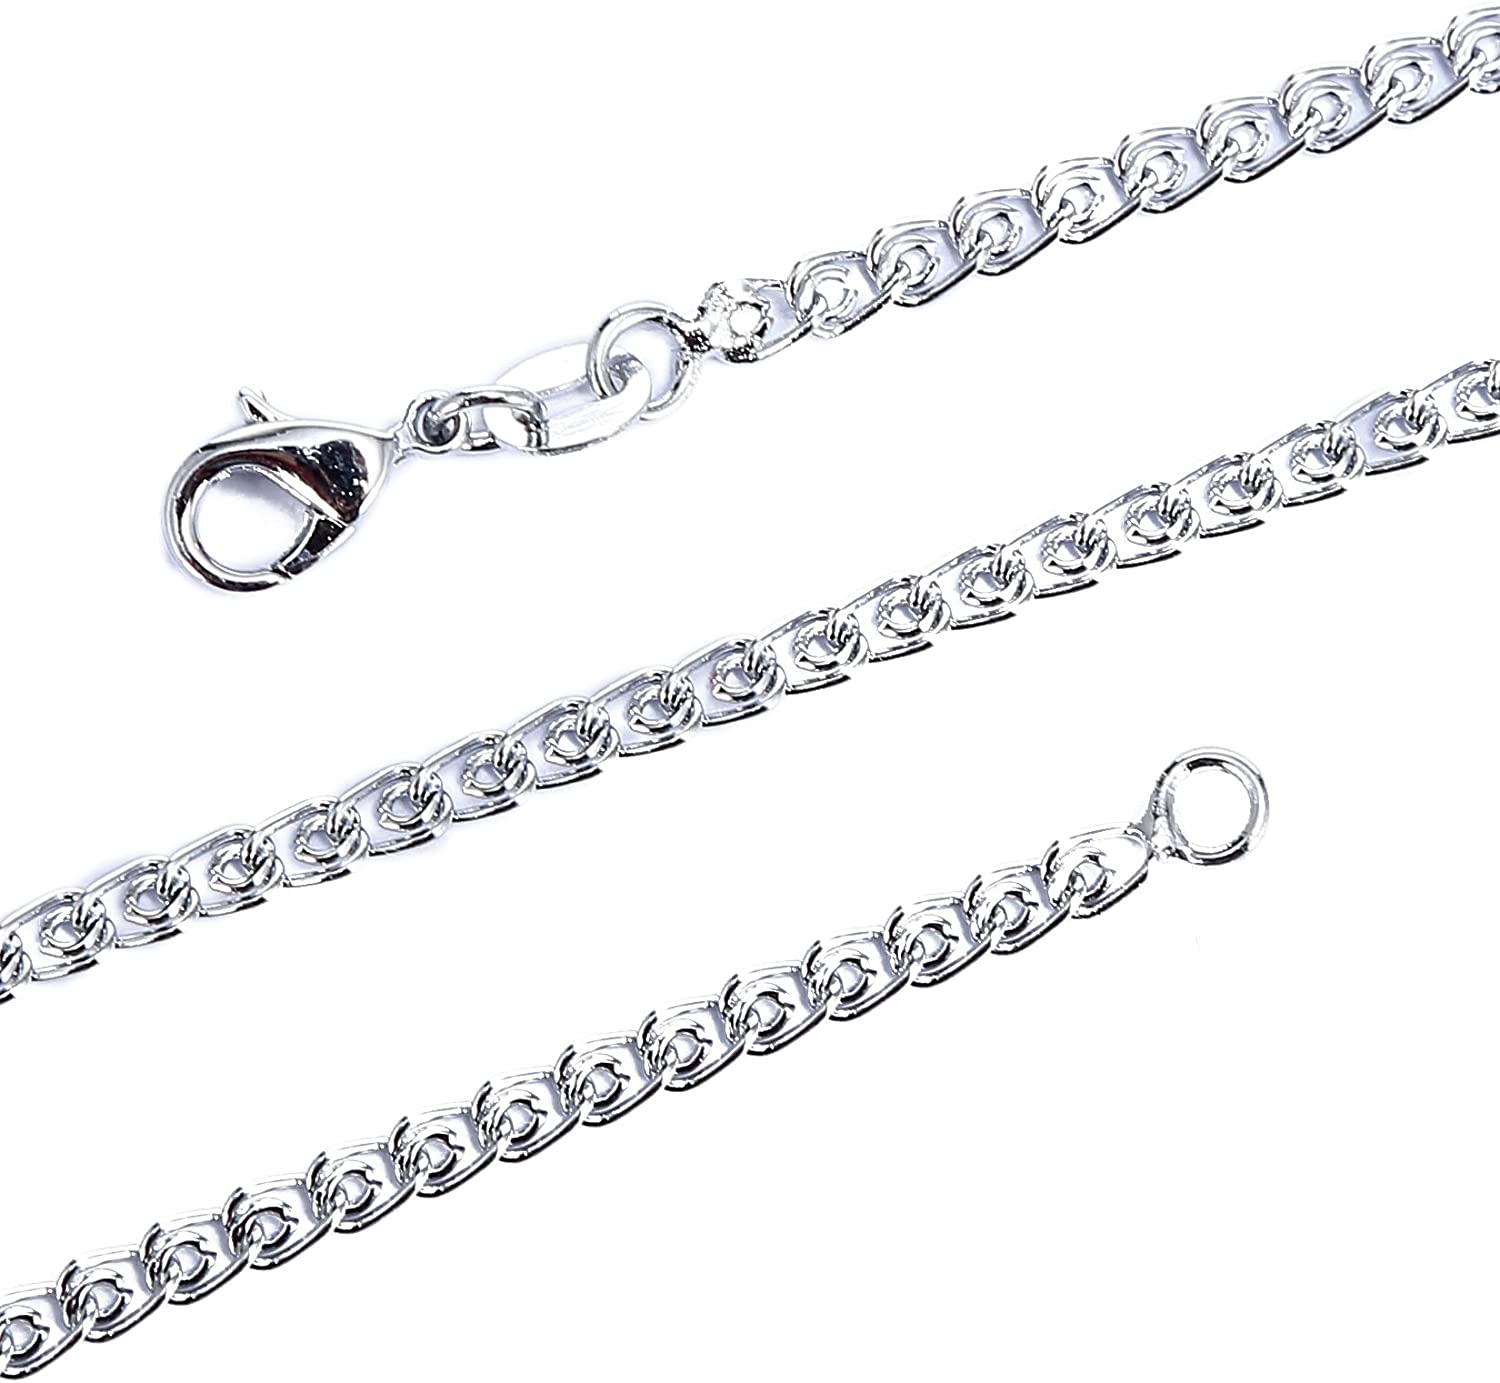 BRCbeads 24 Inches Immitation Rhodium Plated 3.0mm Double Circle Chain Necklace with Lobster Claw Clasp 10pcs per Bag for Jewelry Making